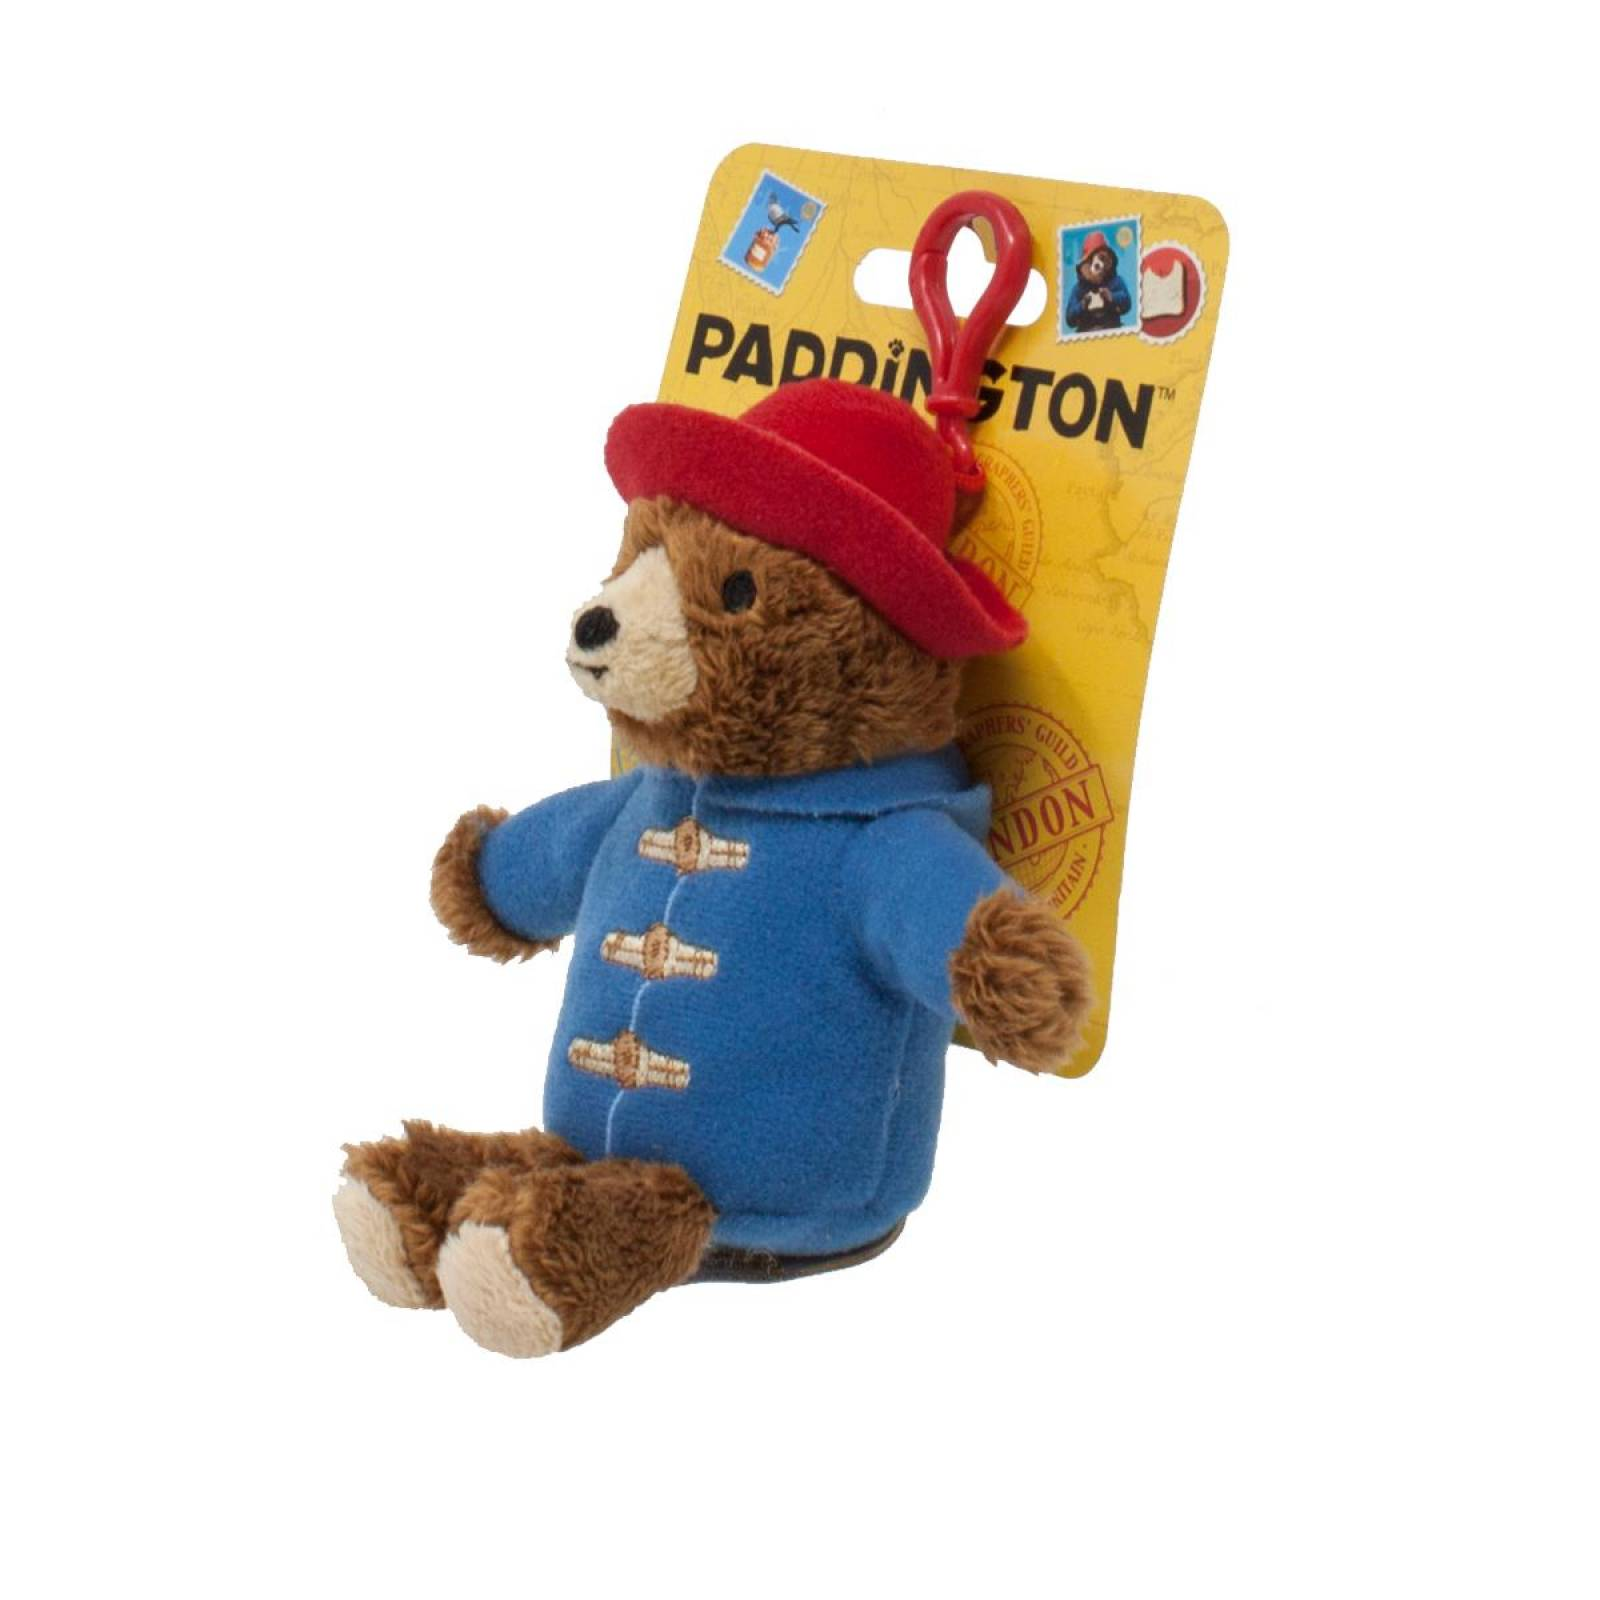 Paddington The Movie Plush Keyring thumbnails